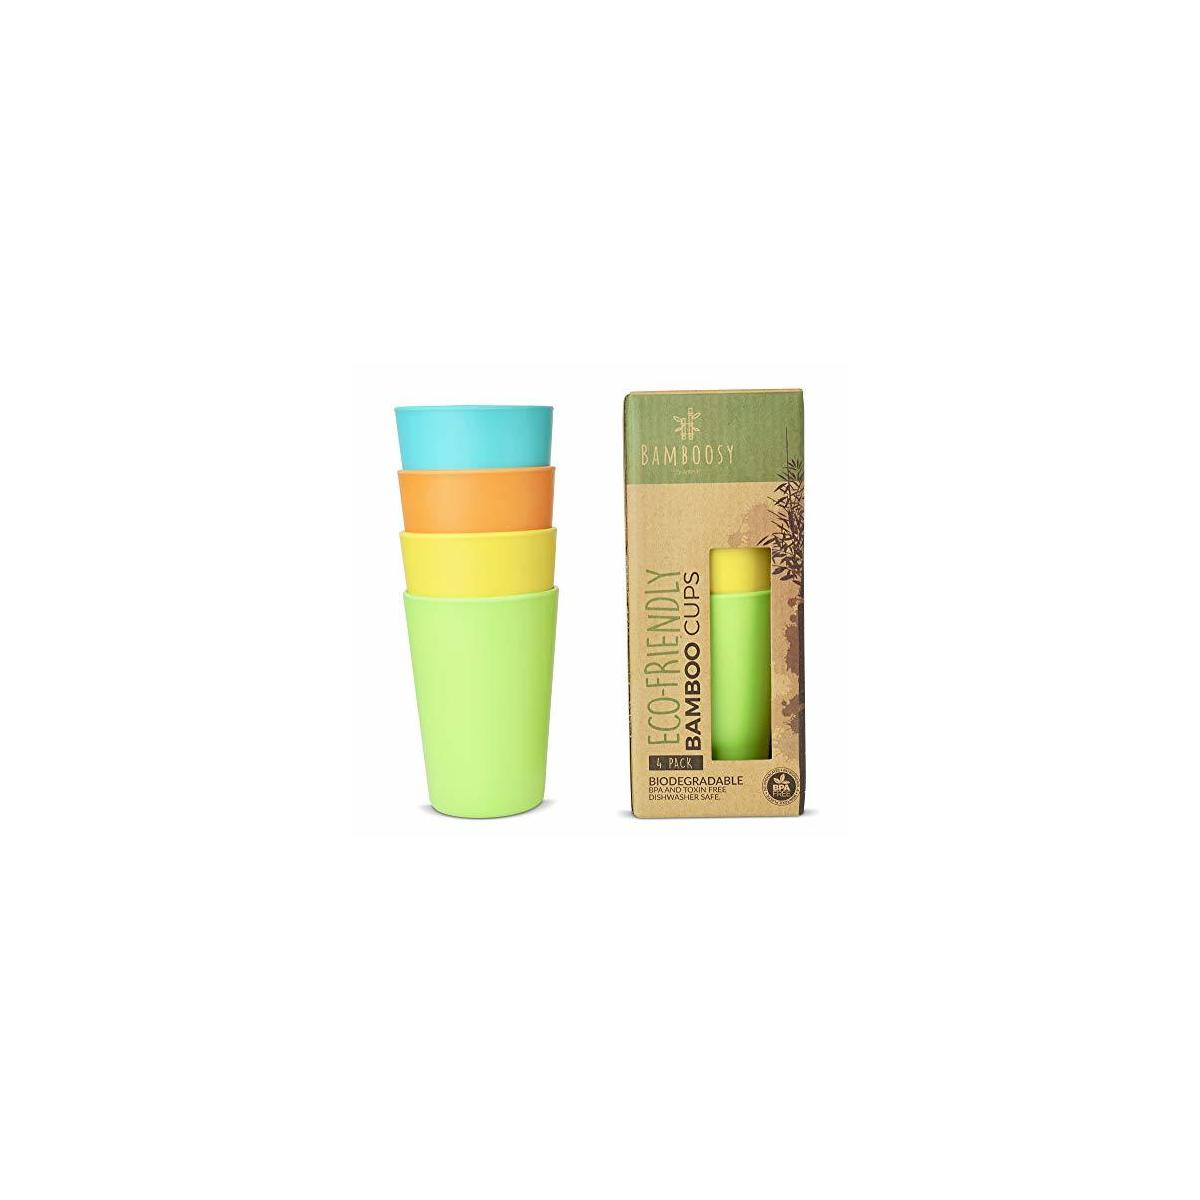 Eco-Friendly Bamboo Cups by Bamboosy – Set of 4 Reusable Bamboo Cups for Kids & Adults – Non-Toxic BPA-Free – Dishwasher Safe – Biodegradable – Perfect for Parties, Picnic, BBQ, Outdoor & Home Use